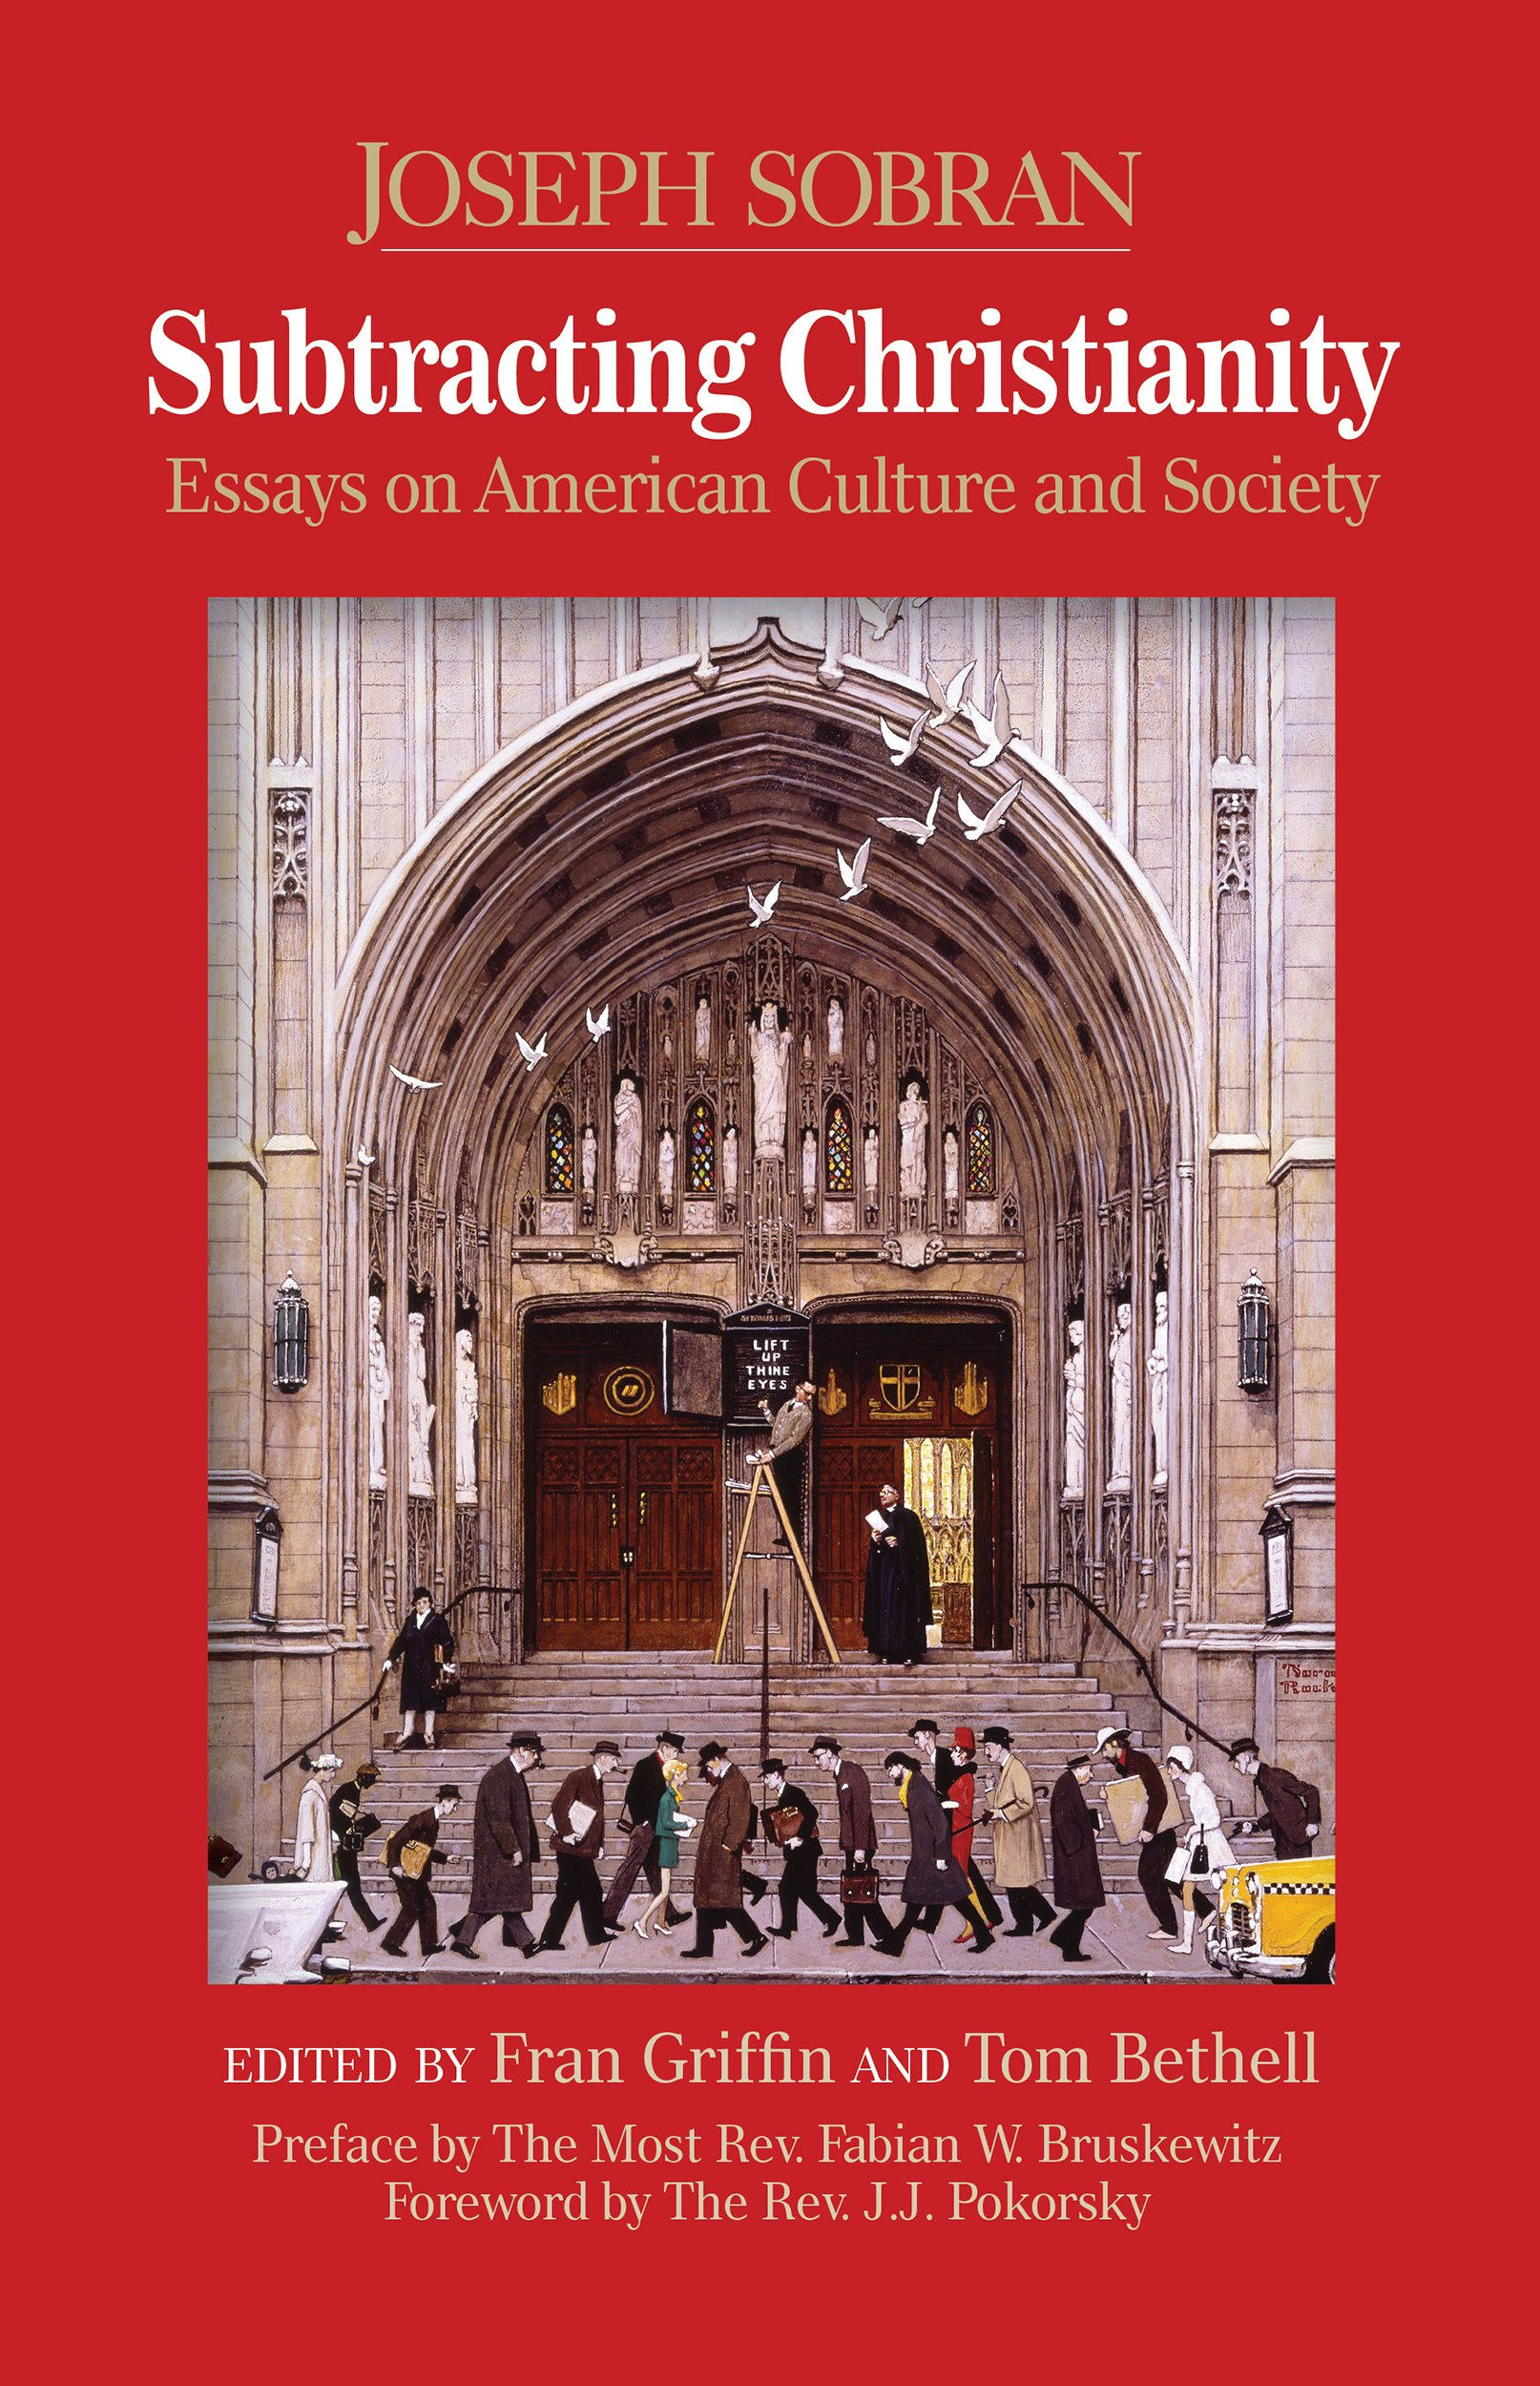 subtracting christianity essays on american culture and society  subtracting christianity essays on american culture and society joseph sobran 9781495143373 com books